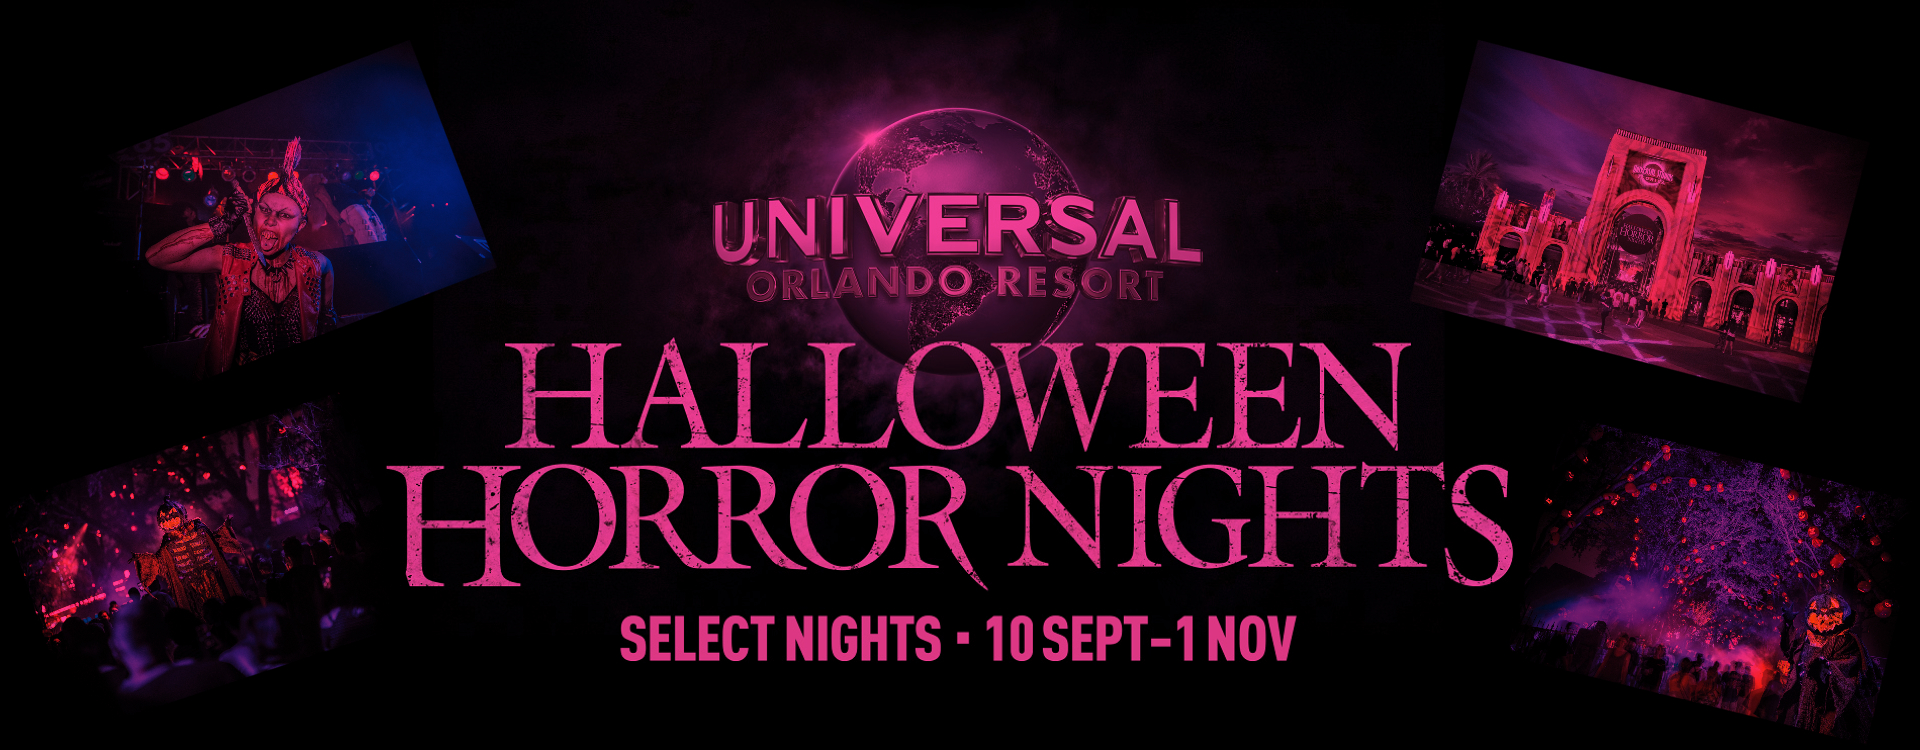 https://www.themeparktickets.co.uk/Ticket/Halloween-Horror-Nights-Frequent-Fear-Plus-Pass